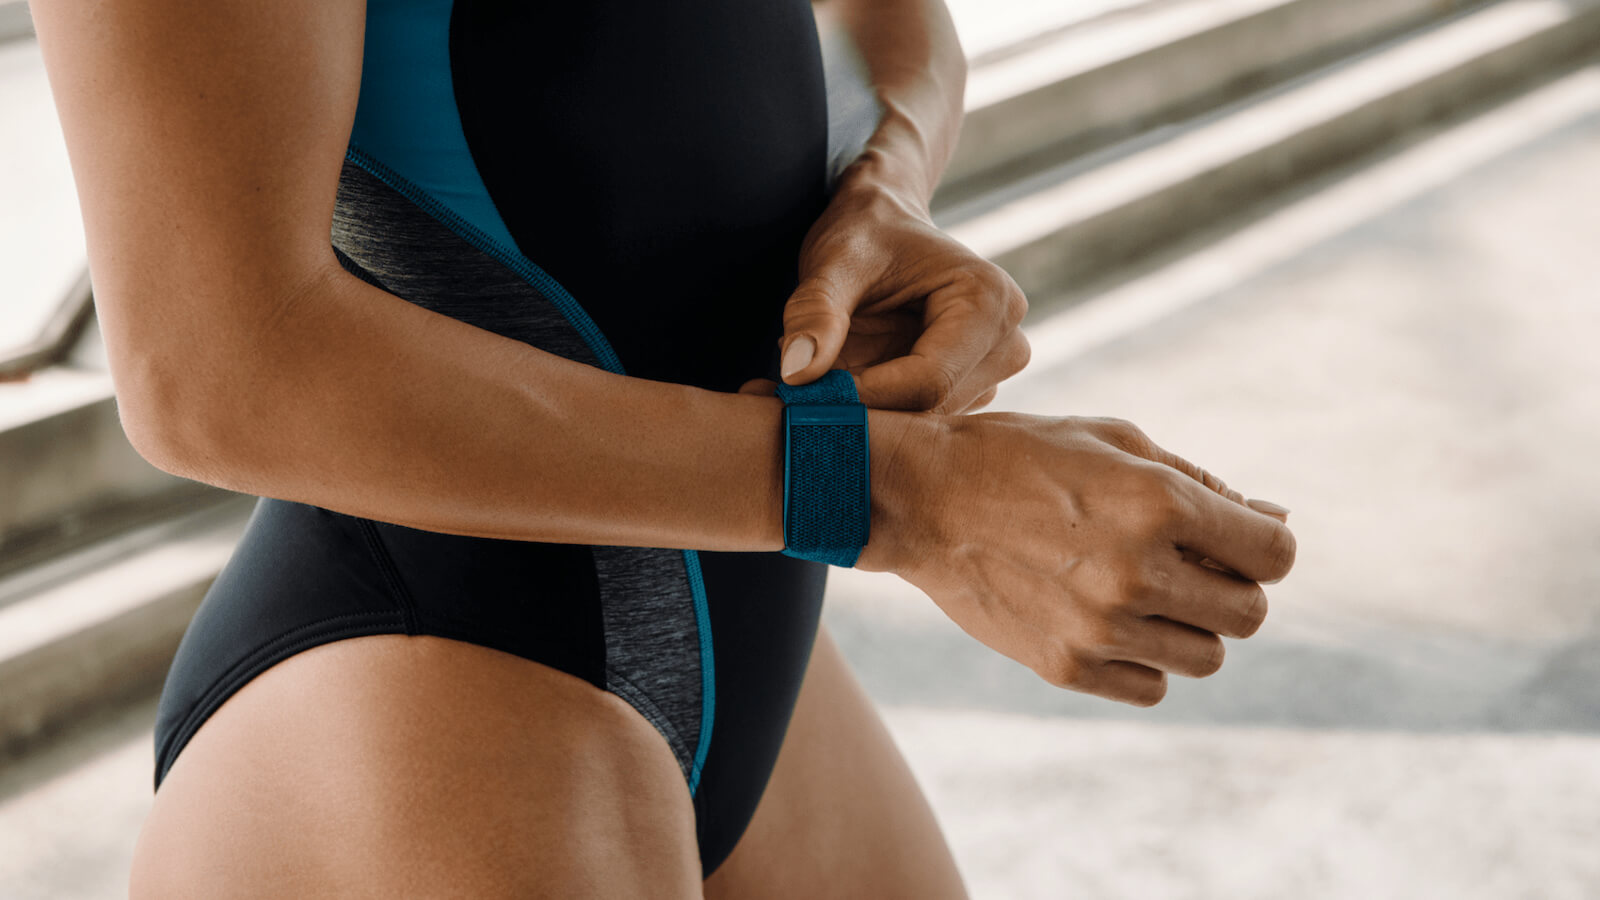 WHOOP Strap 3.0 activity tracker wearable collects data to help you understand your body